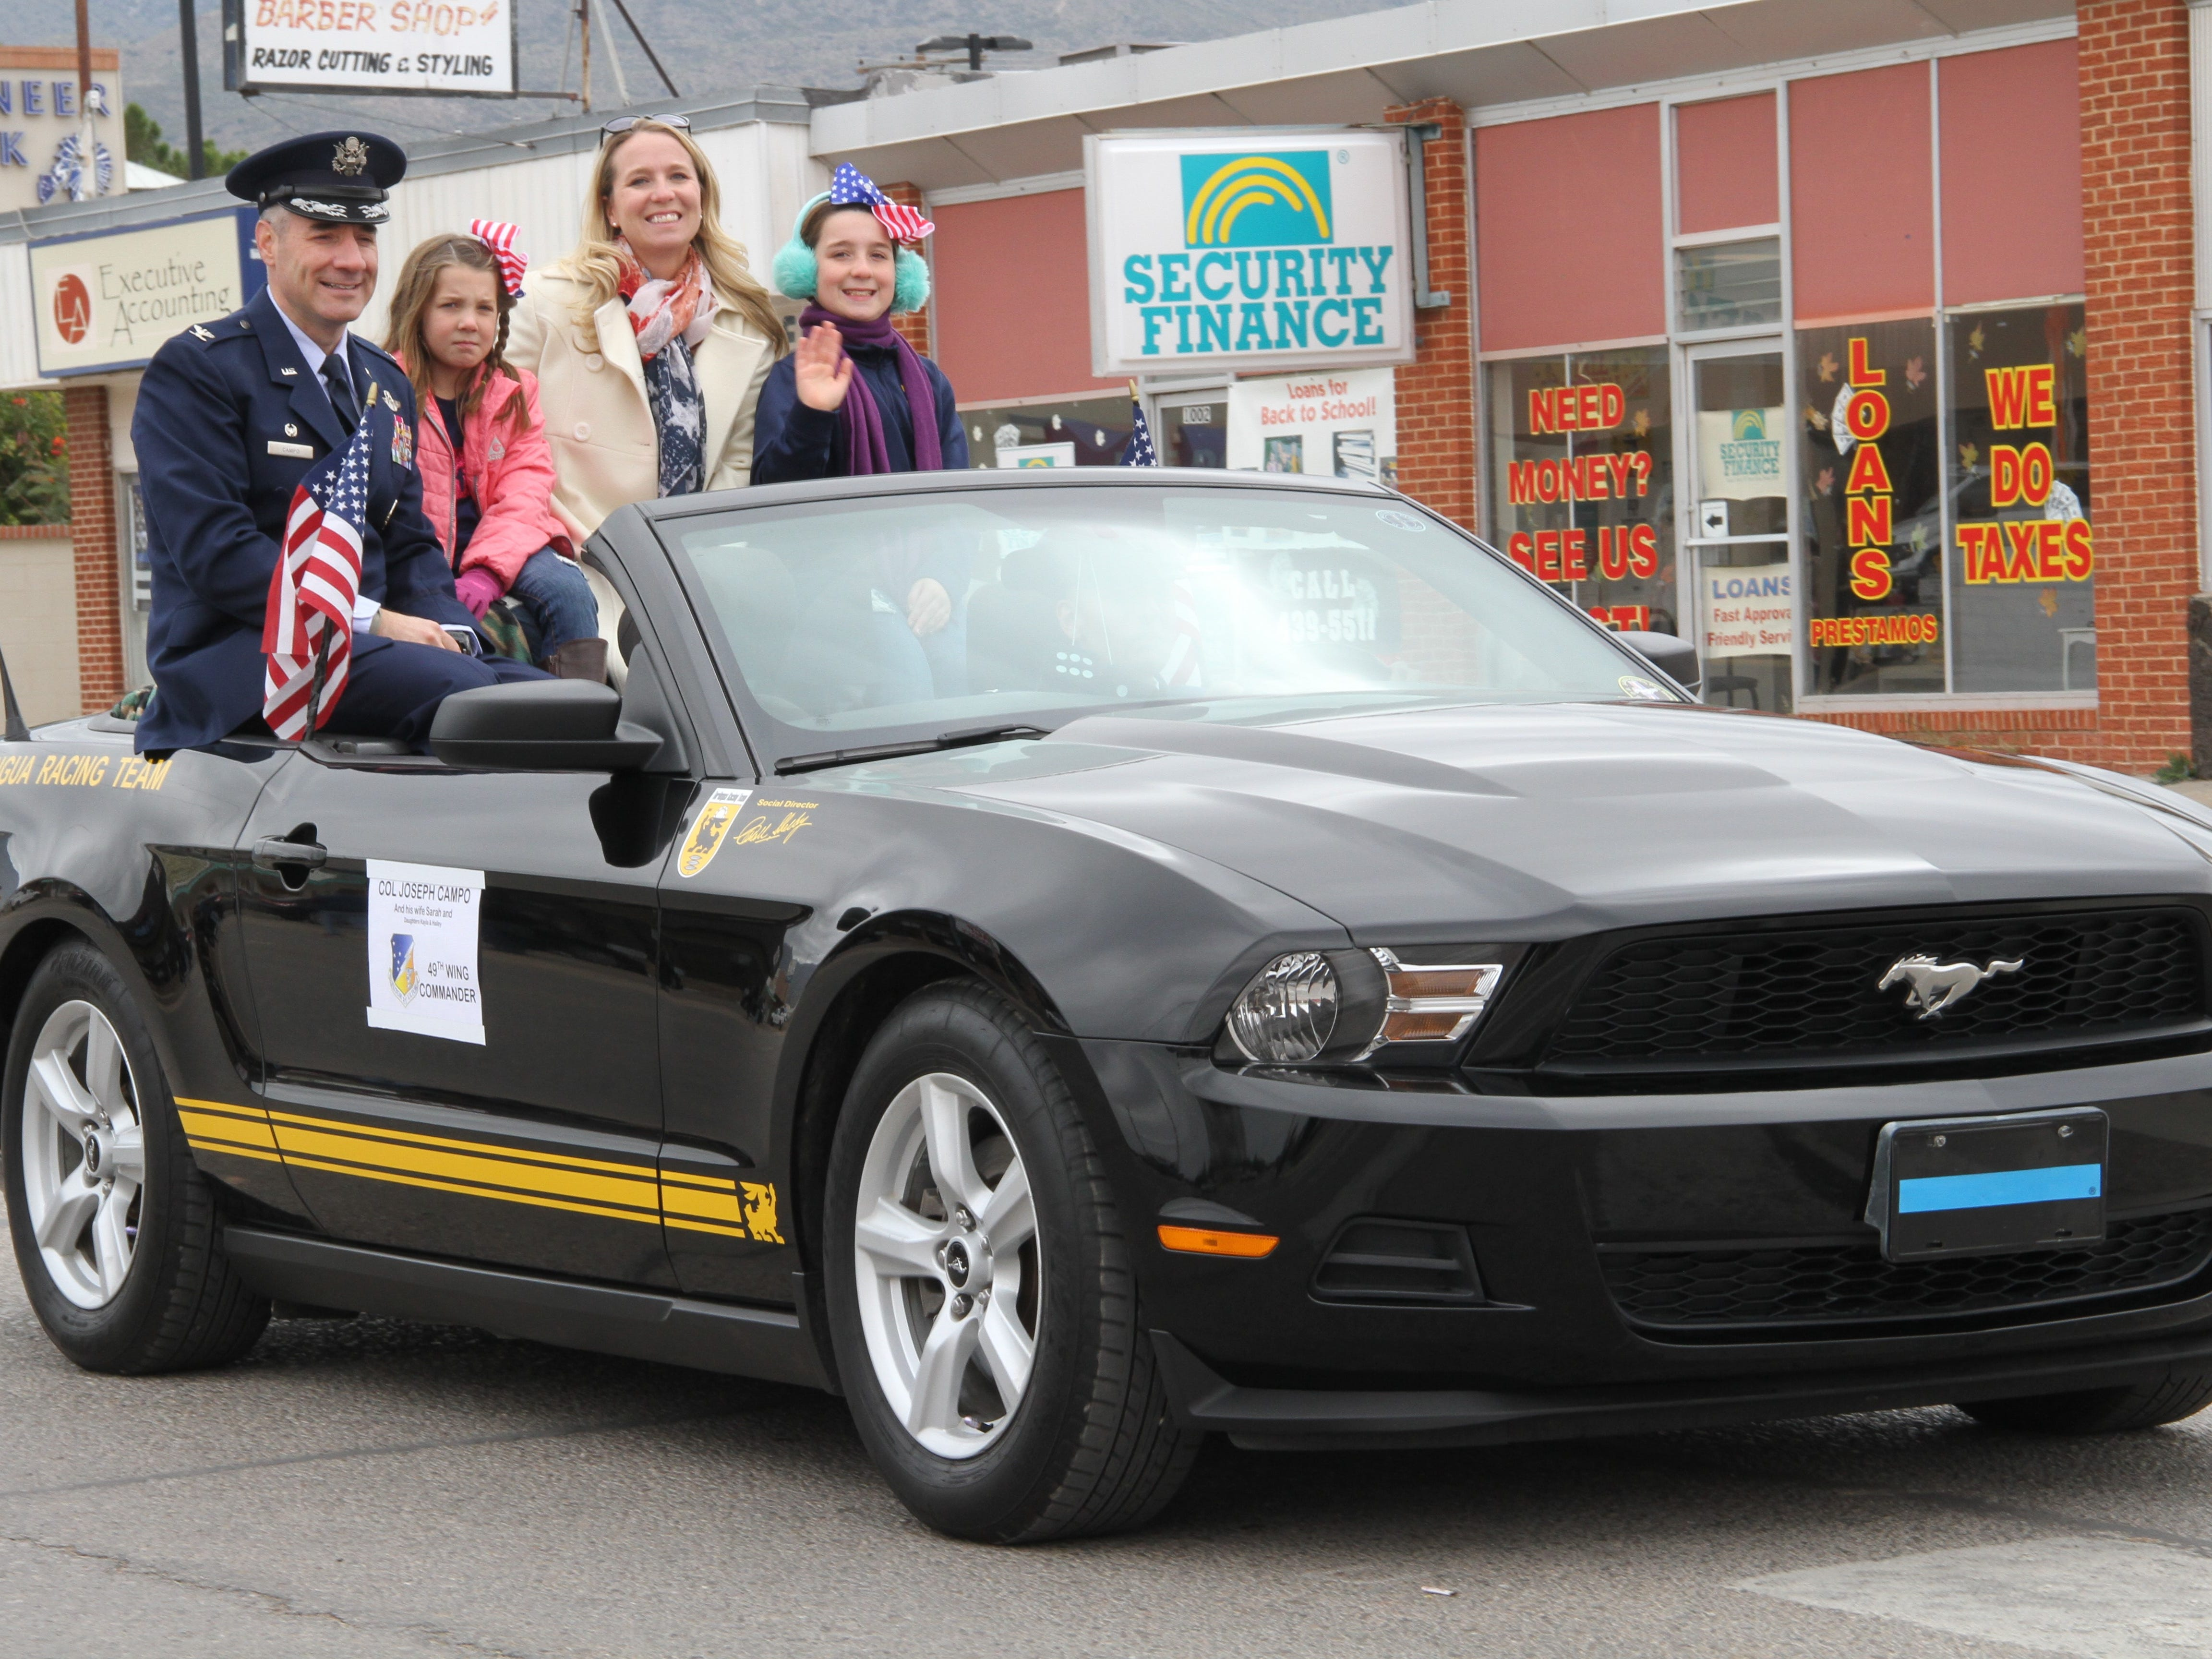 Holloman 49th Wing Commander Col. Joseph Campo, his wife Sarah and daughters Kayla and Hailey rode in the led vehicle at Alamogordo's Veterans Day Parade Saturday.